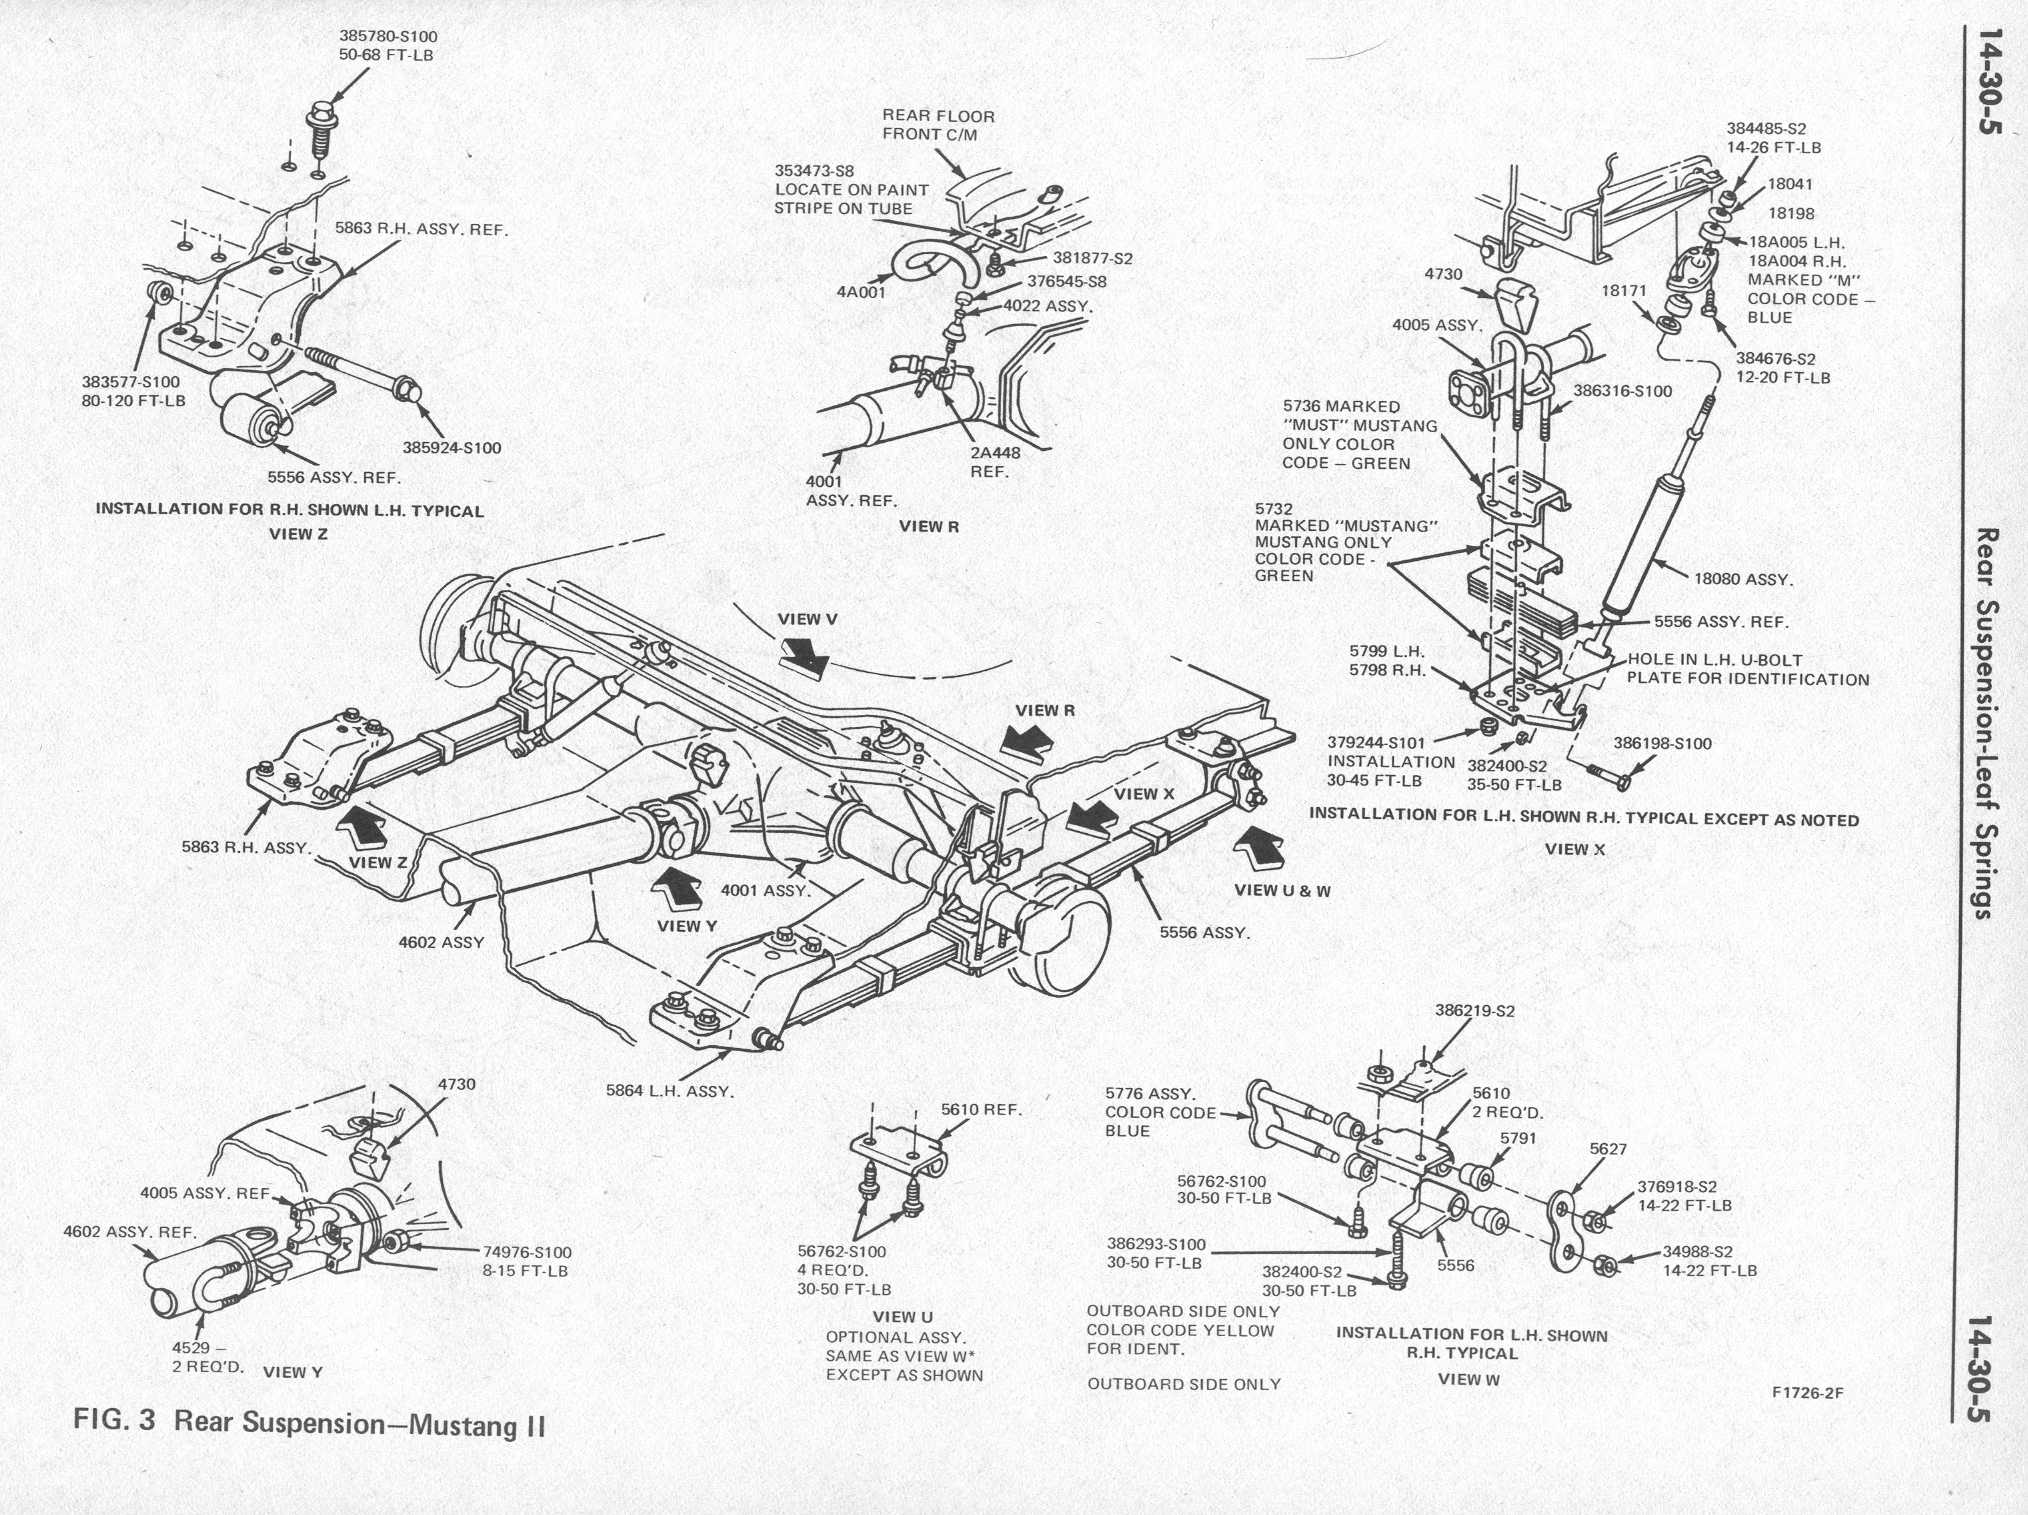 1968 ford mustang 289 engine diagram best wiring library 2007 Mercury Milan Transmission Problems we also have a very large 300kb view